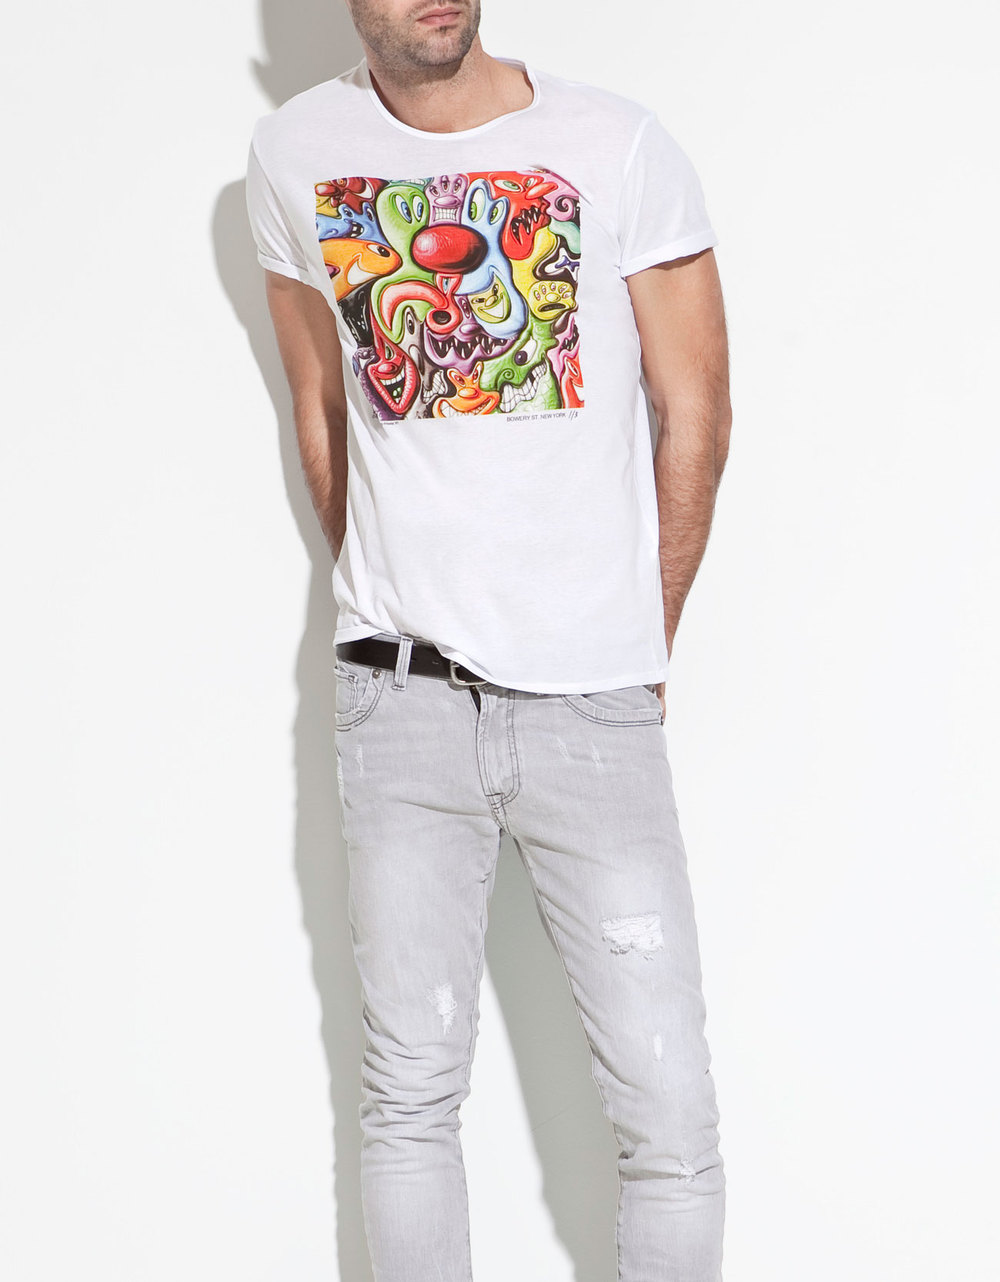 zara-white-kenny-scharf-t-shirt-product-1-3007940-593586371.jpeg